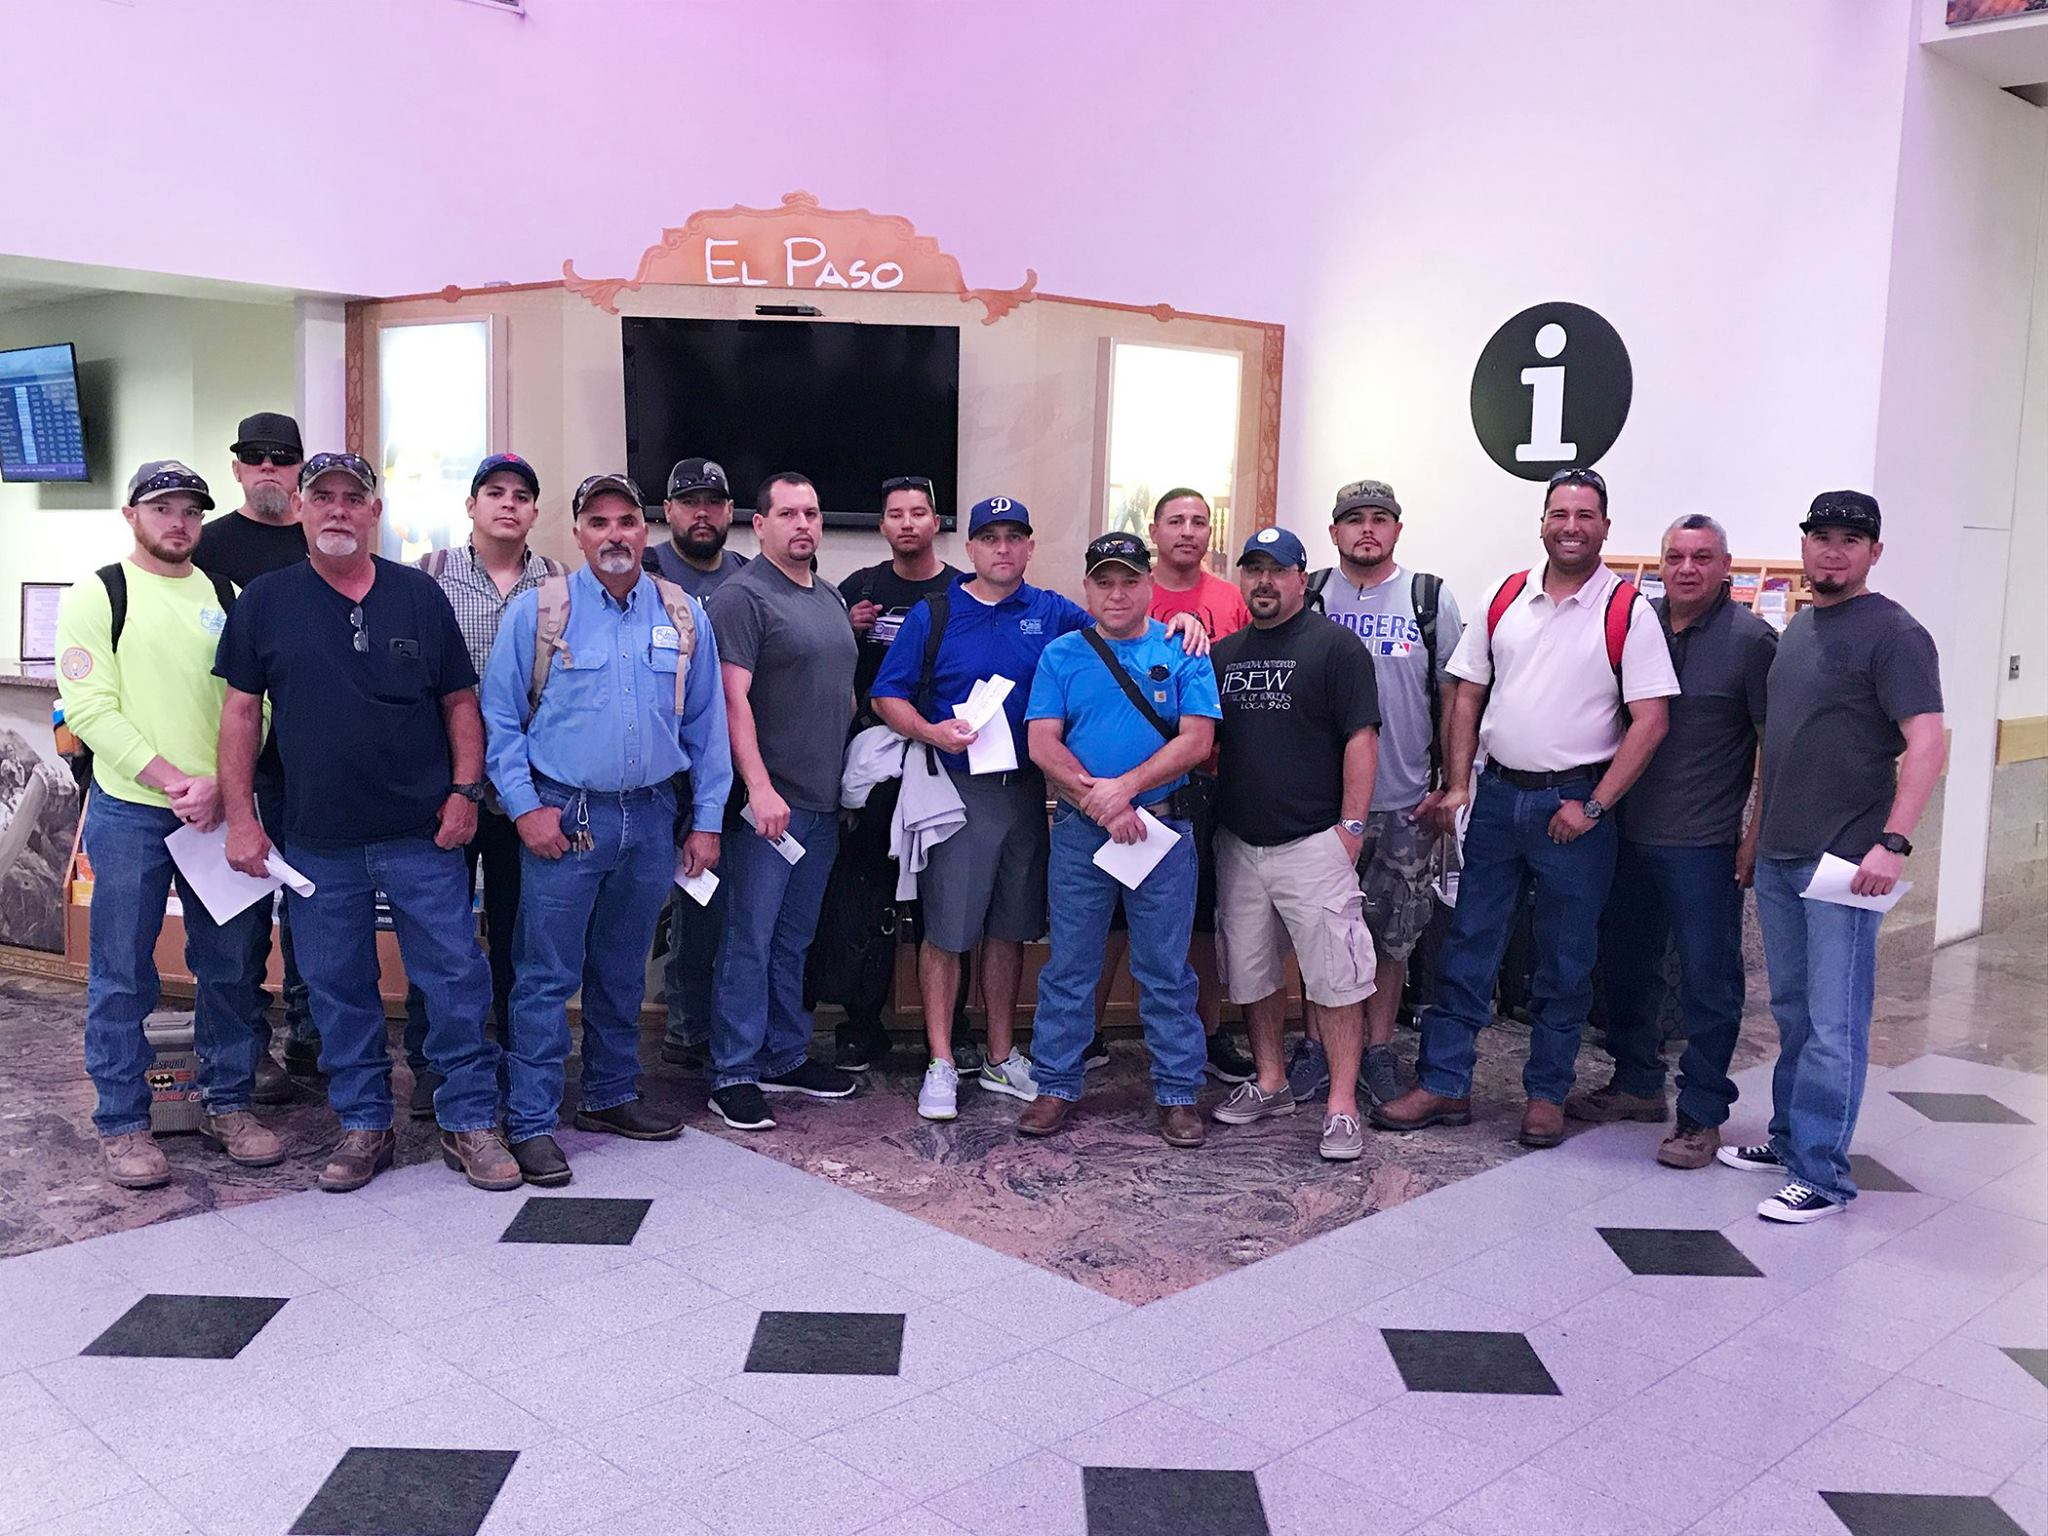 Employees with El Paso Electric head to Florida to help with power restoration efforts after Hurricane Irma left millions without power. Credit: El Paso Electric